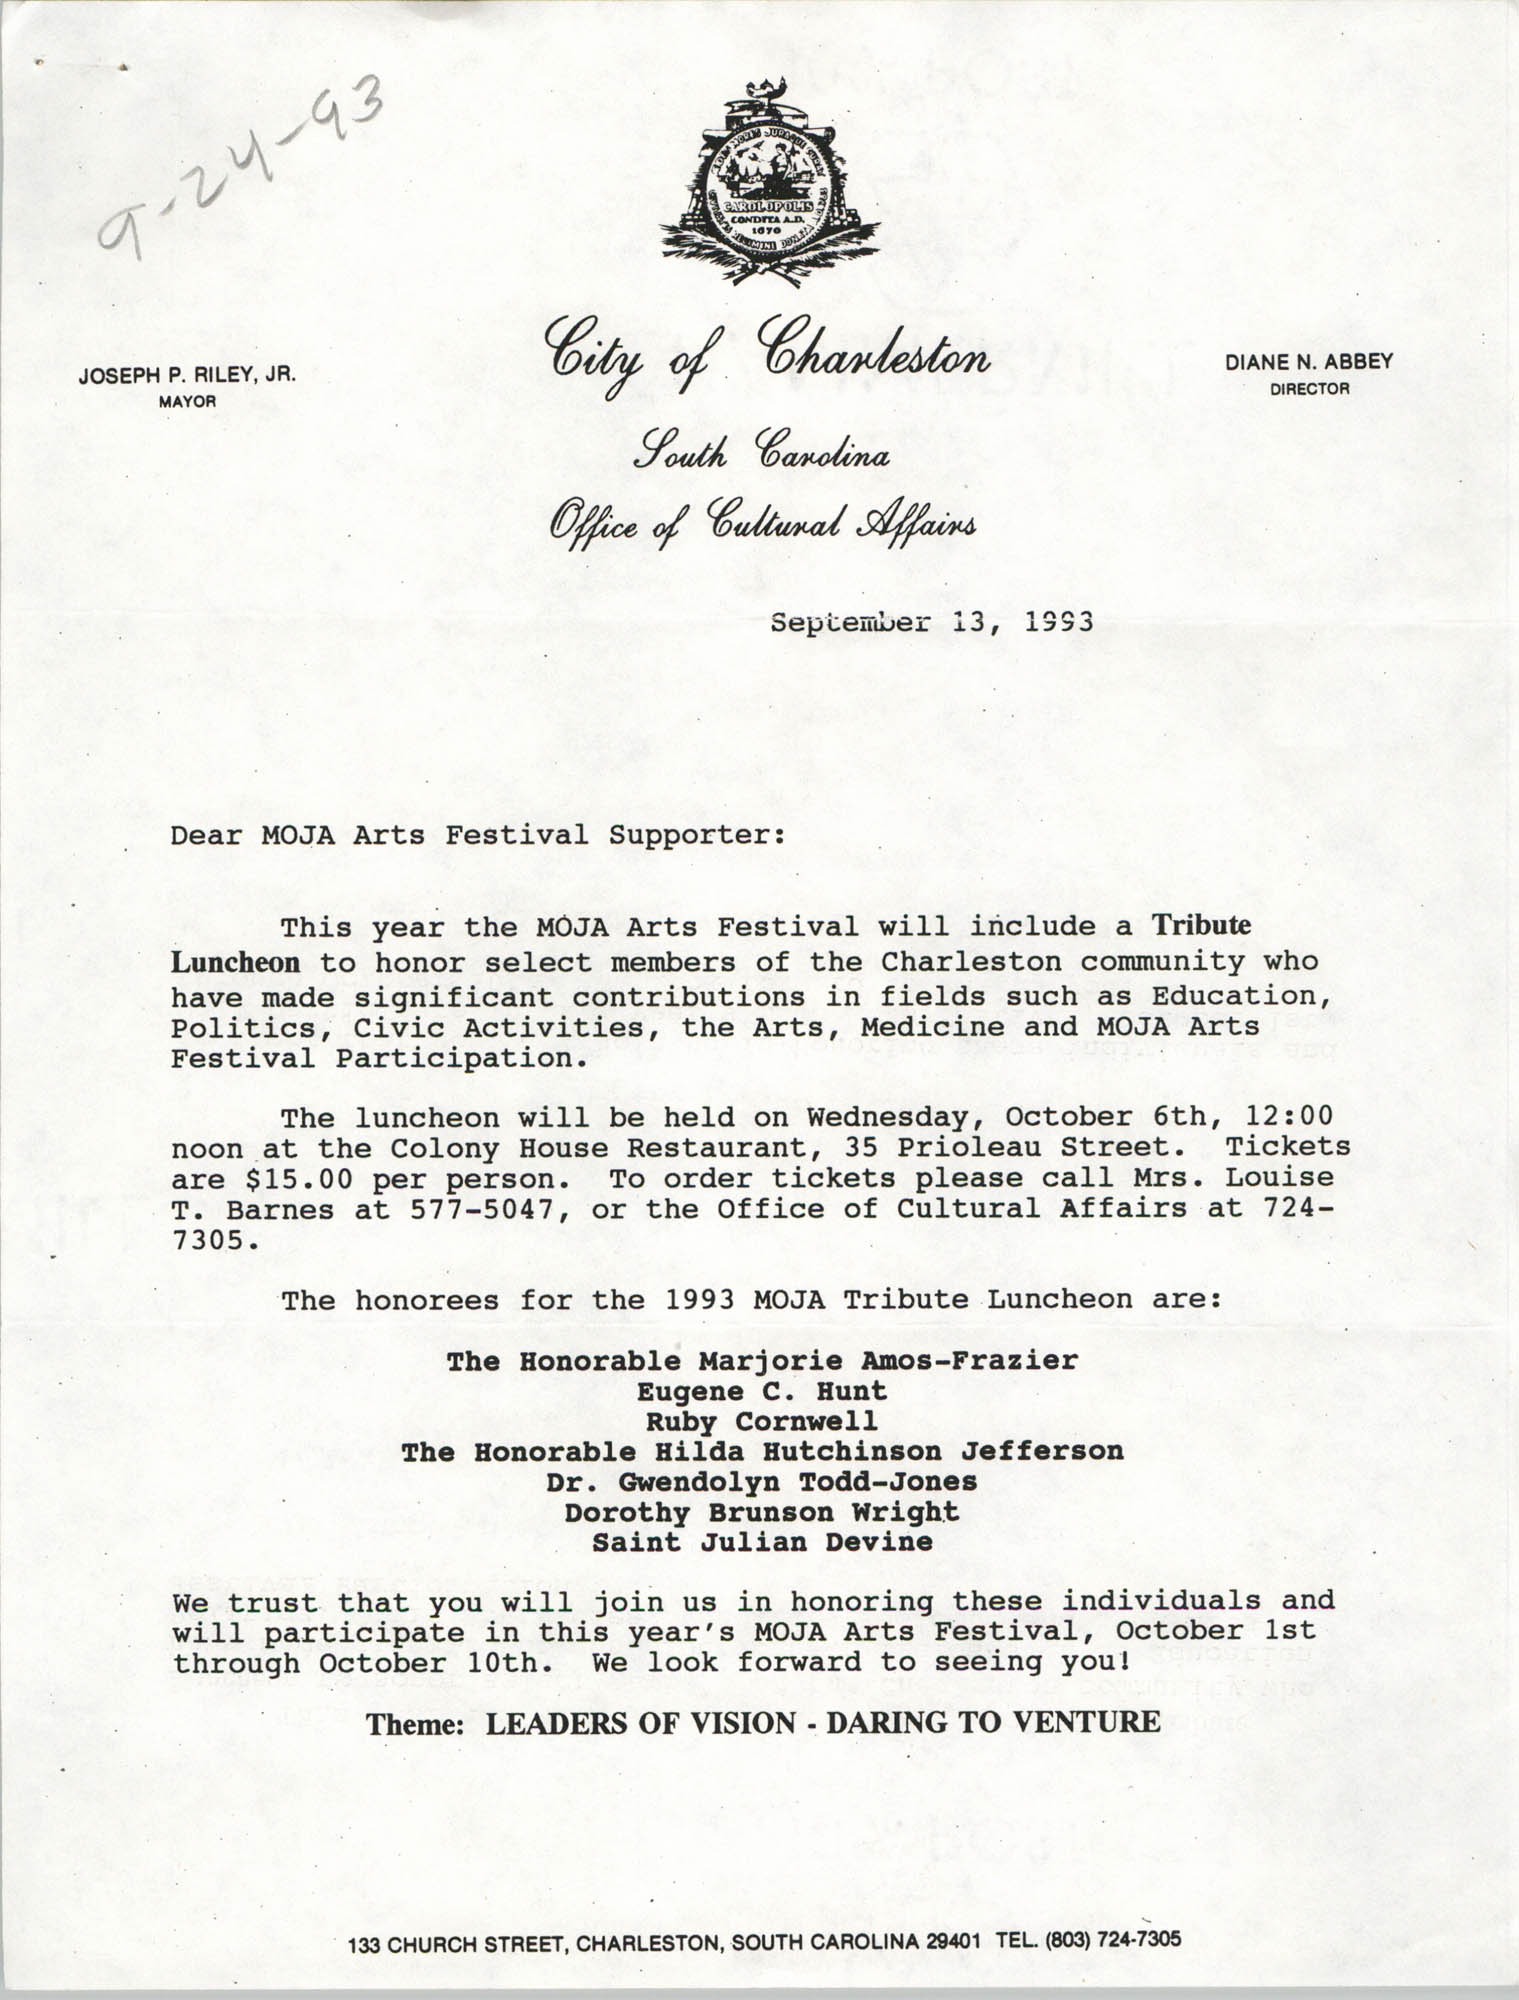 MOJA Arts Festival, Tribute Luncheon Invitation, September 13, 1993